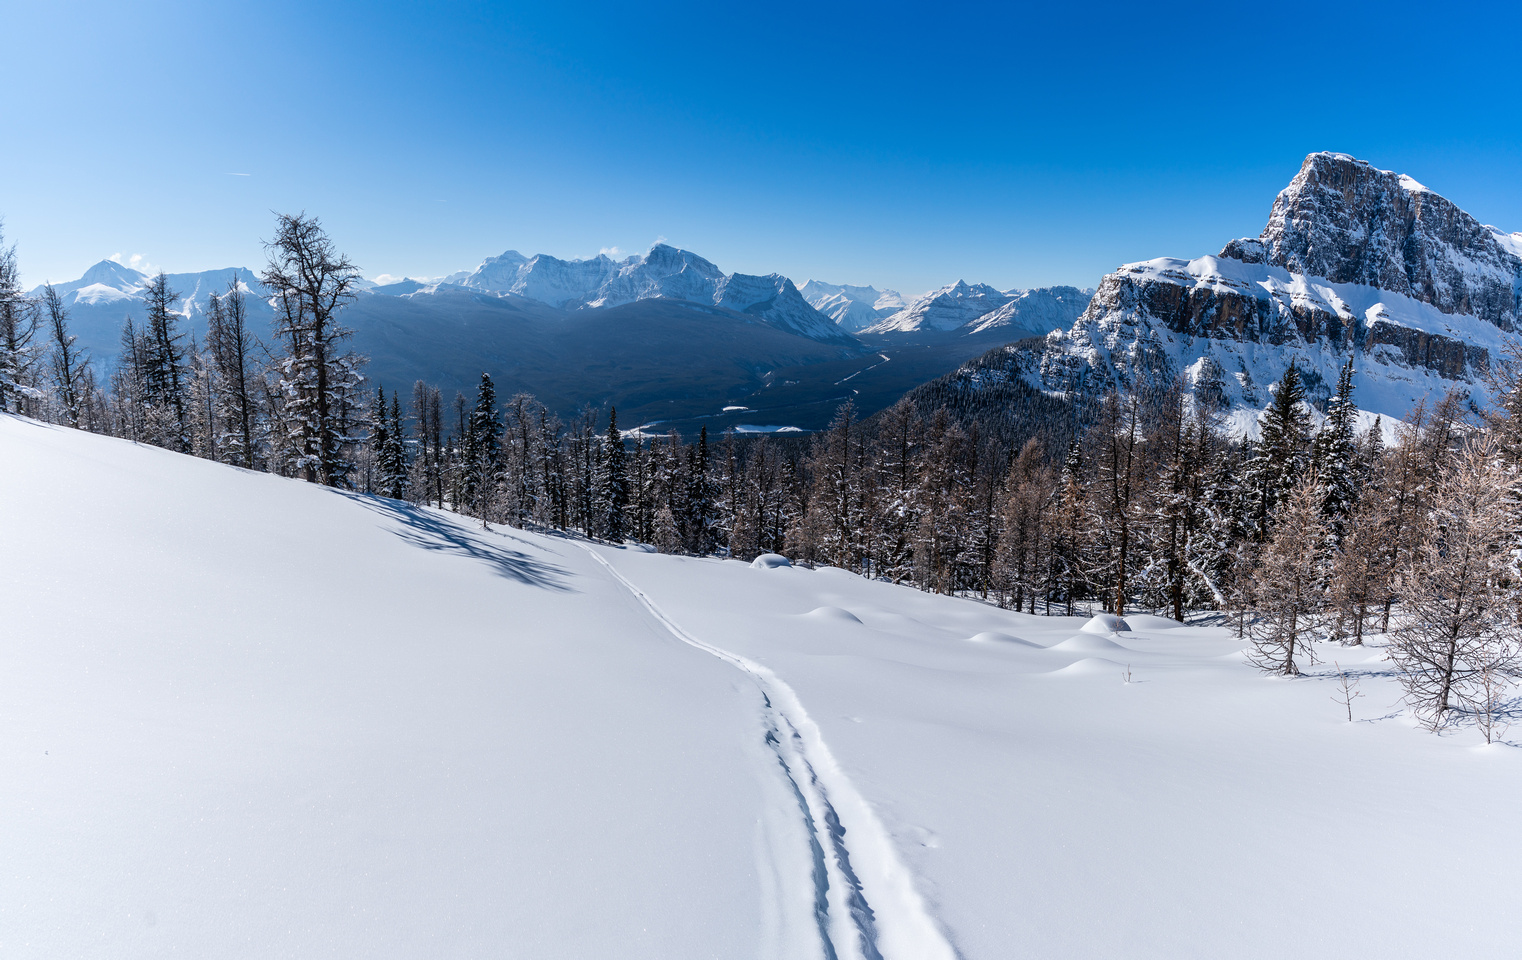 Skiing through the larch forest.